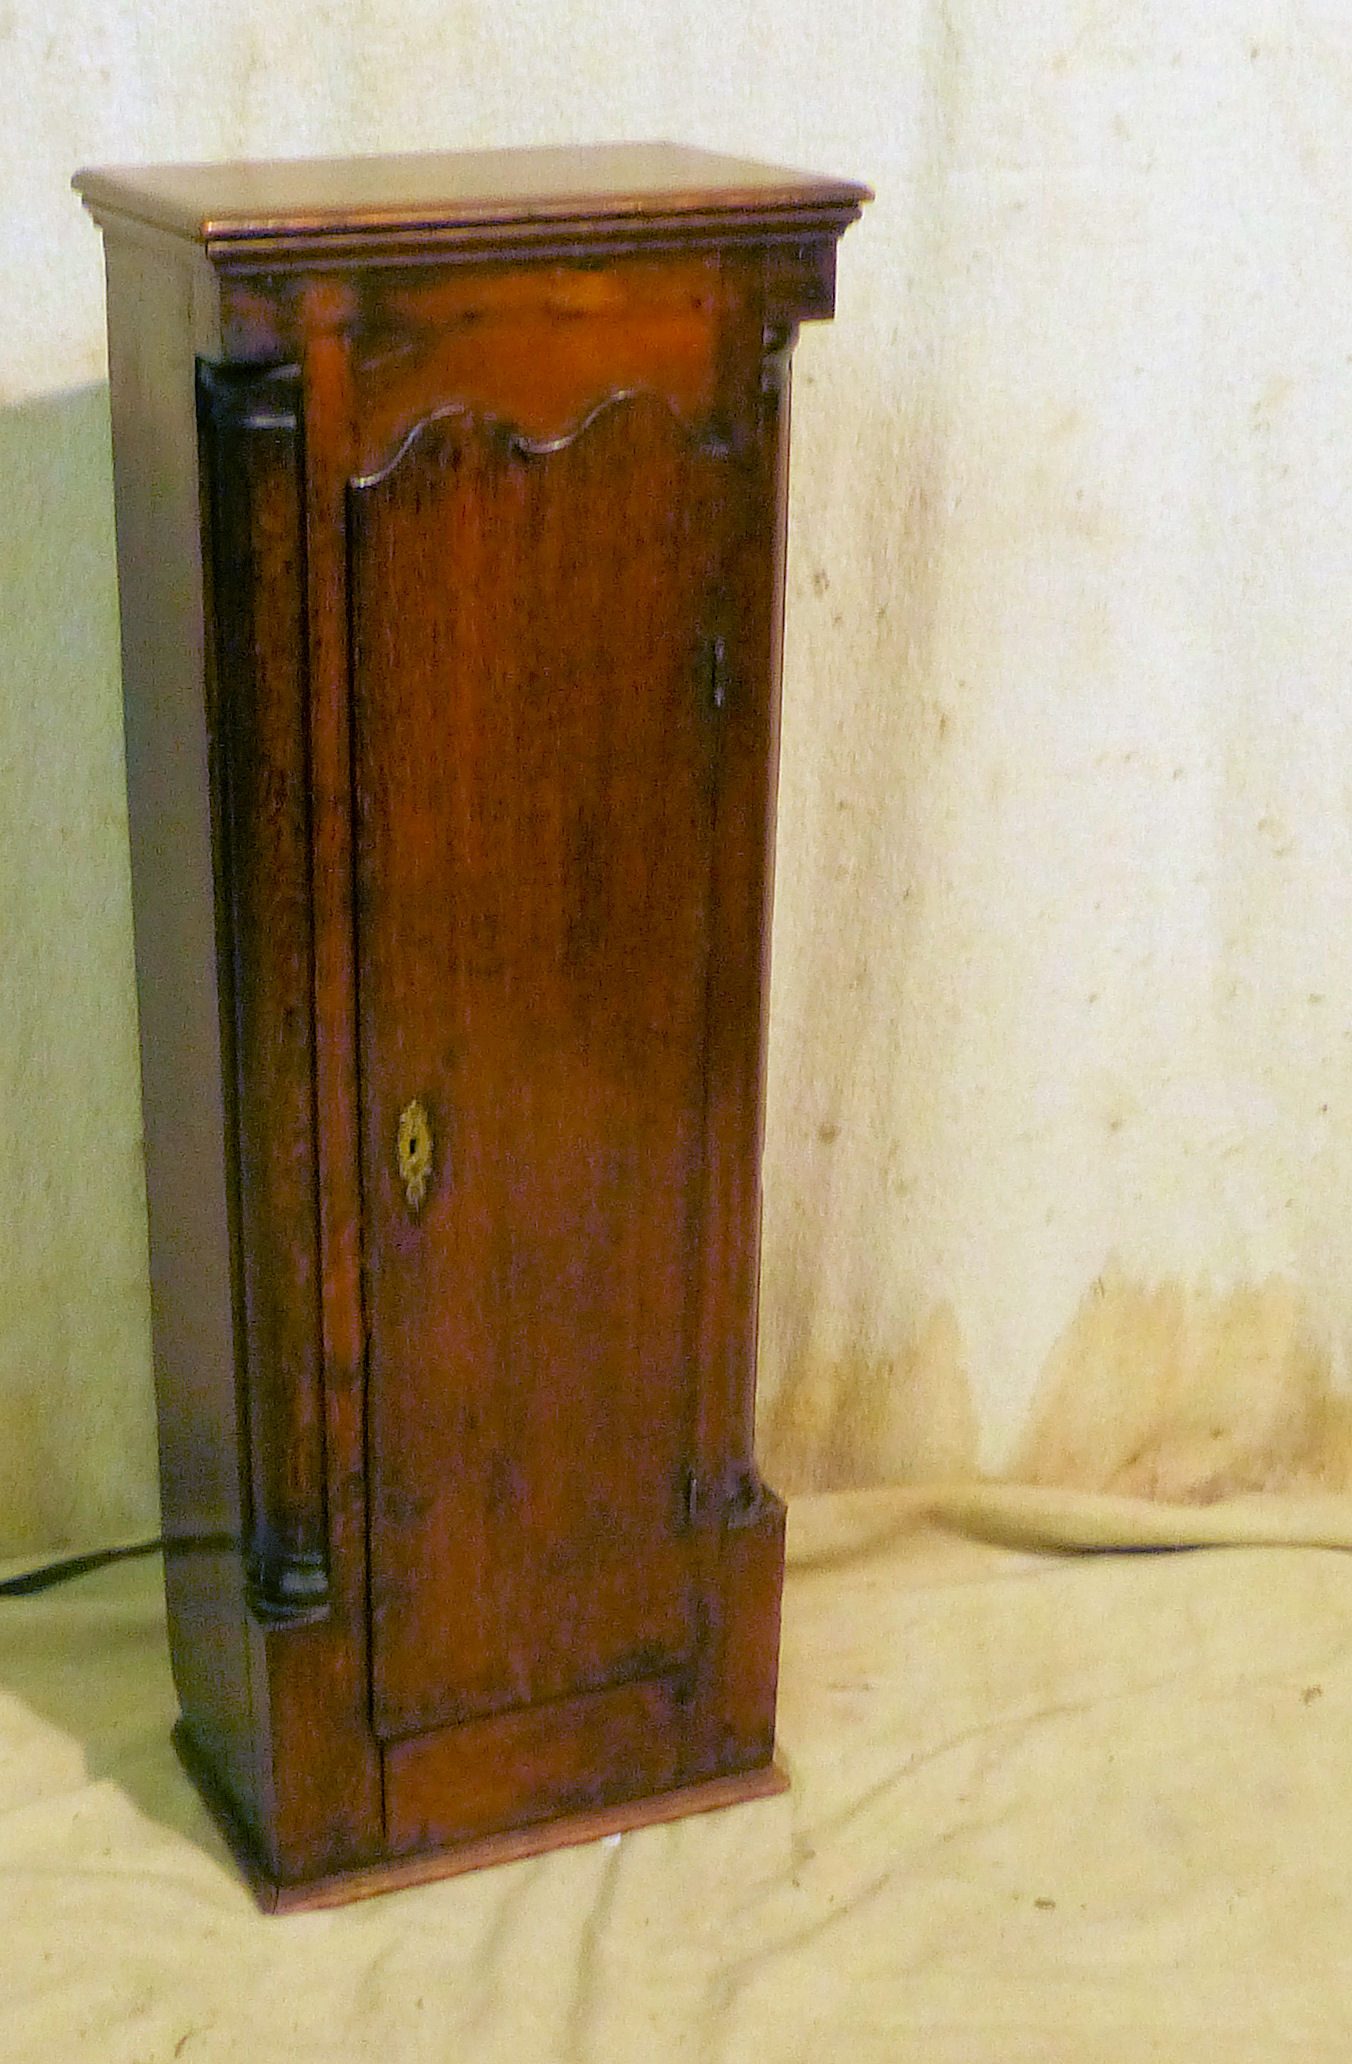 A 19th Century Oak Clock Case Trunk having scalloped panel door with half round supports